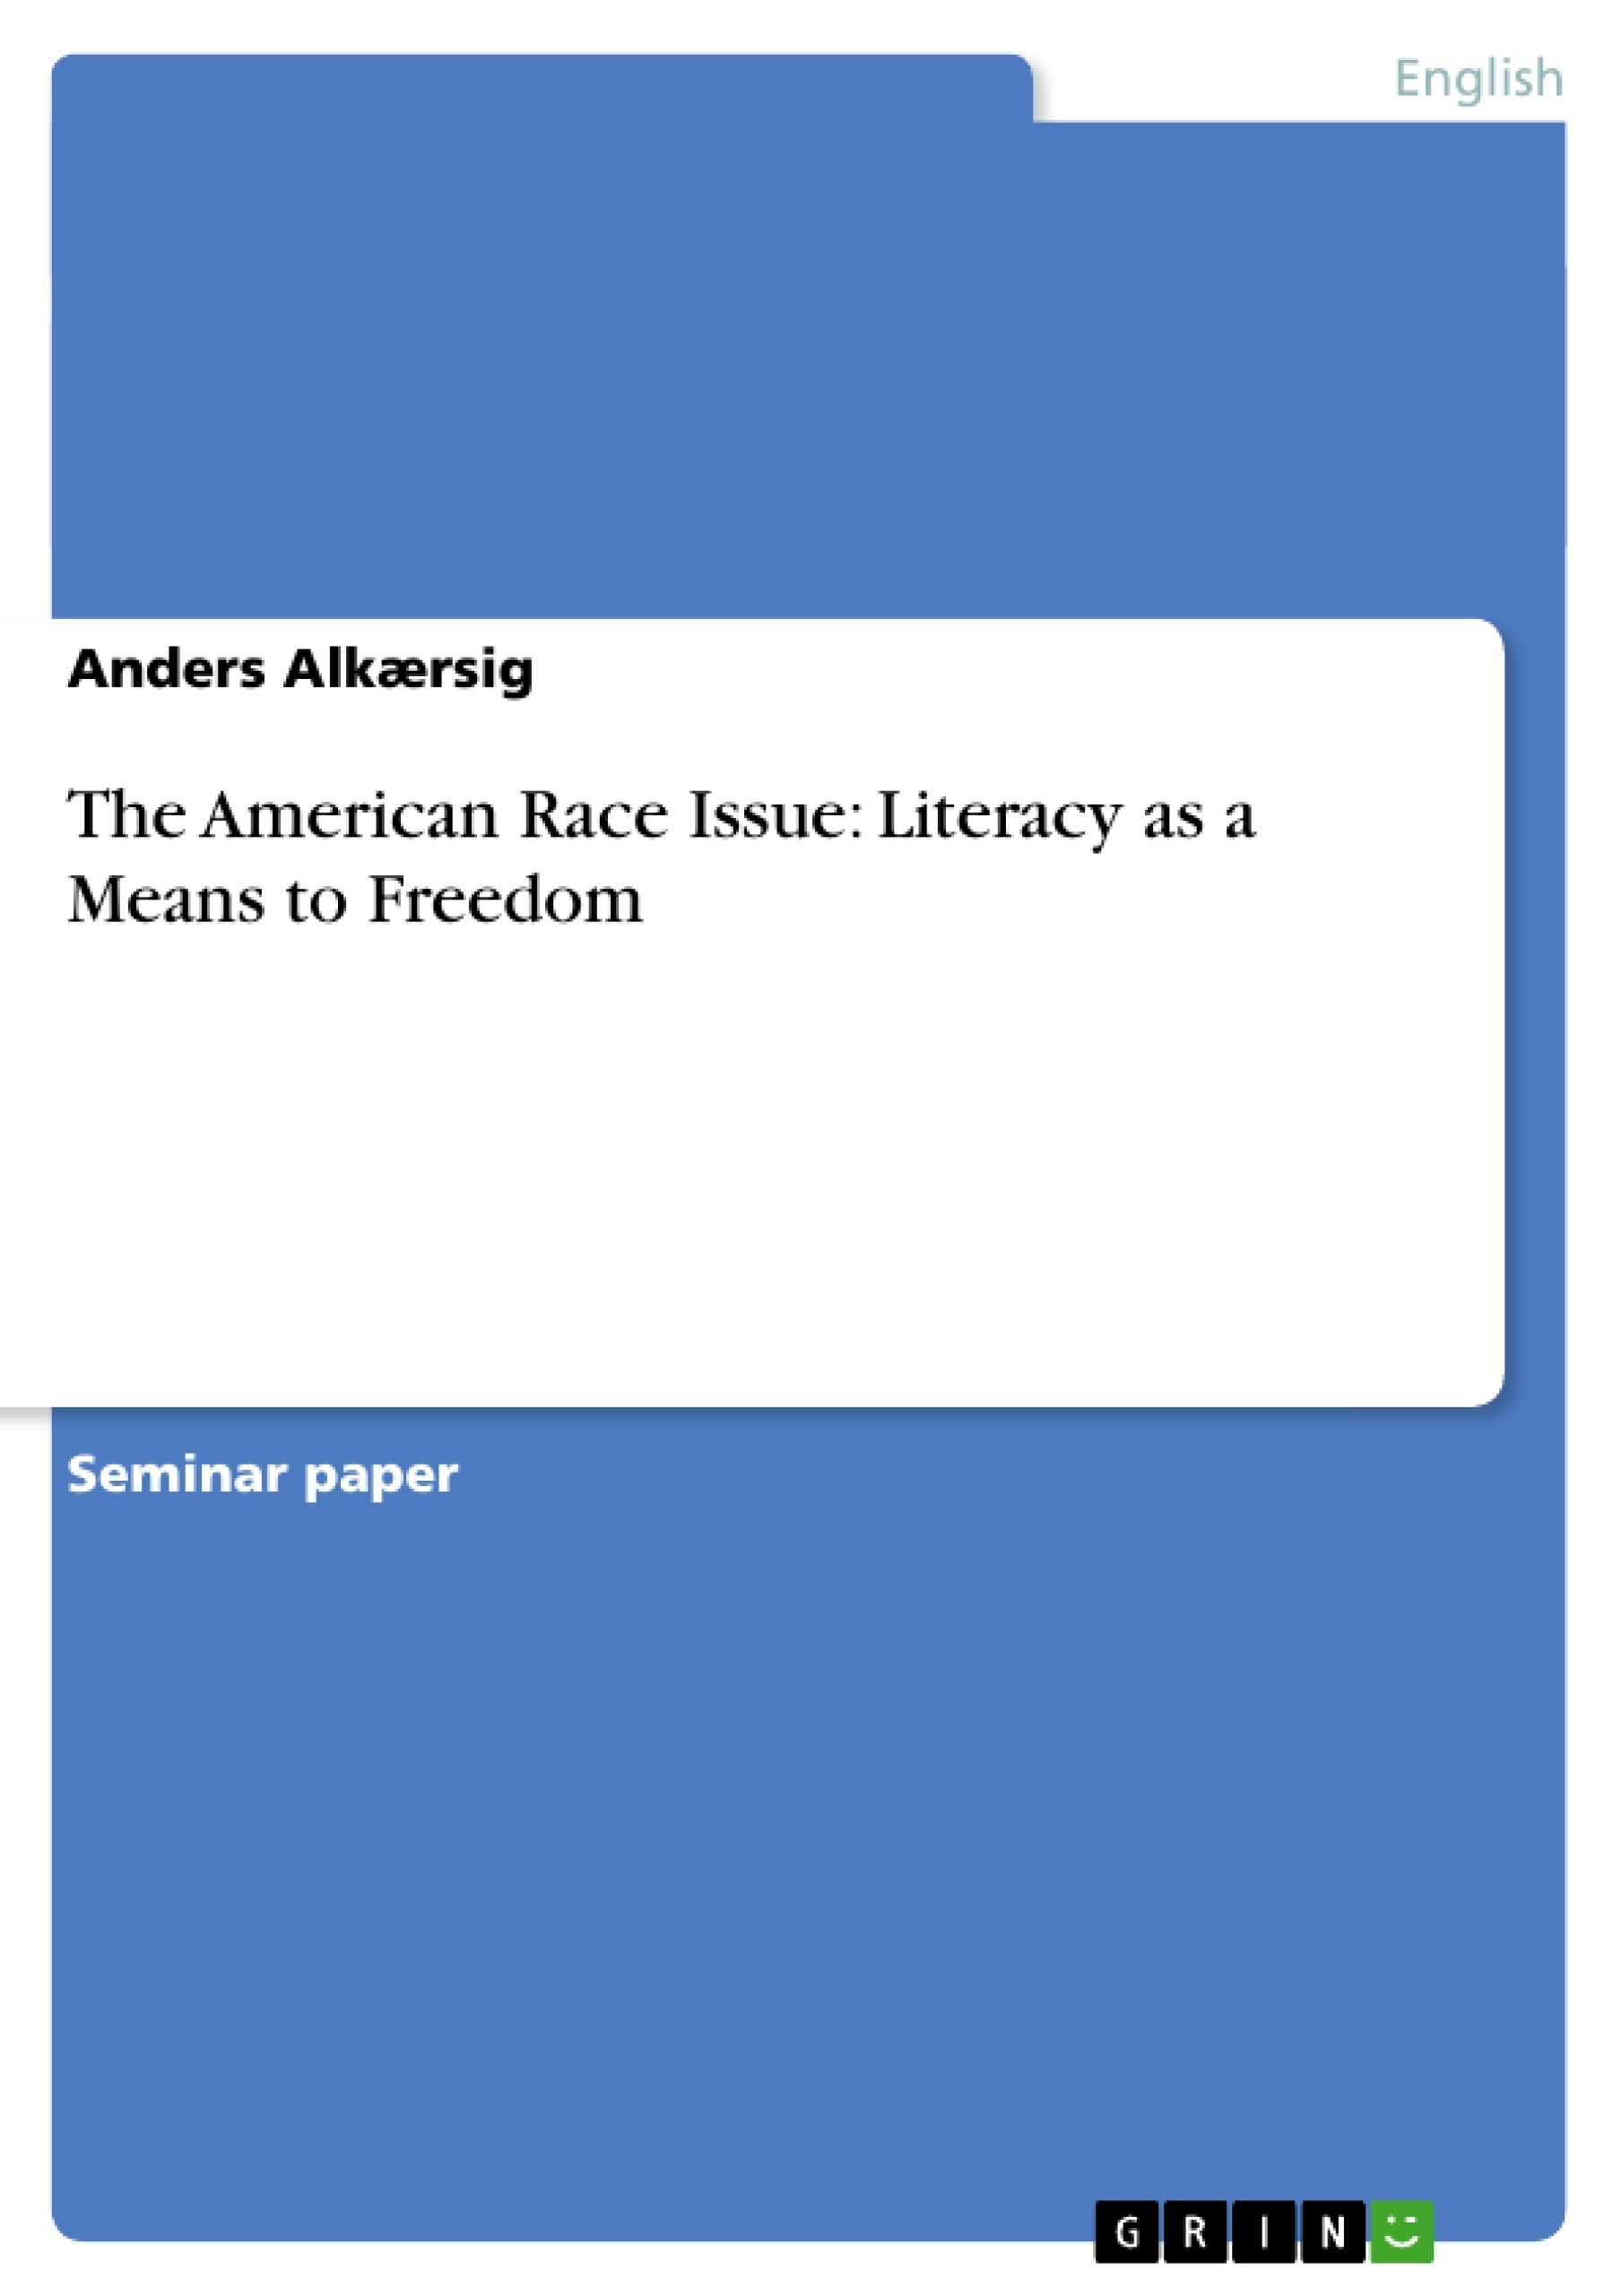 Title: The American Race Issue: Literacy as a Means to Freedom